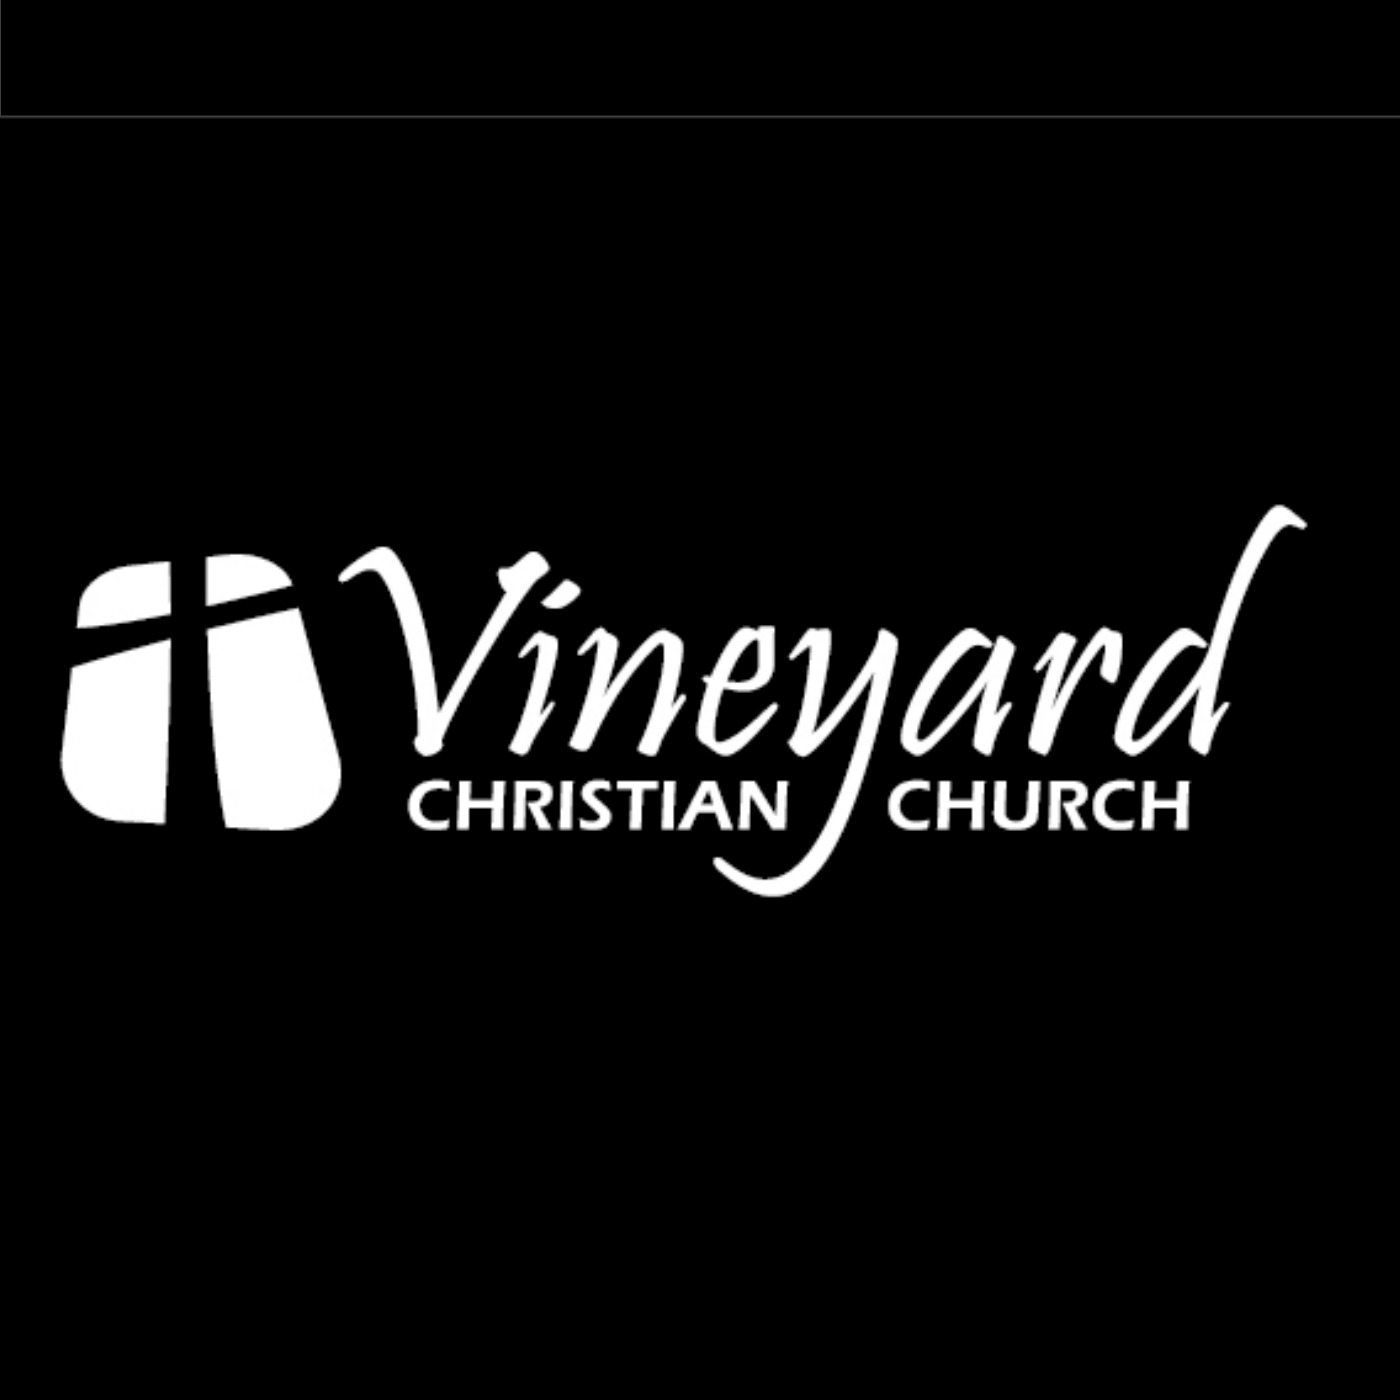 Vineyard Christian Church of Pataskala